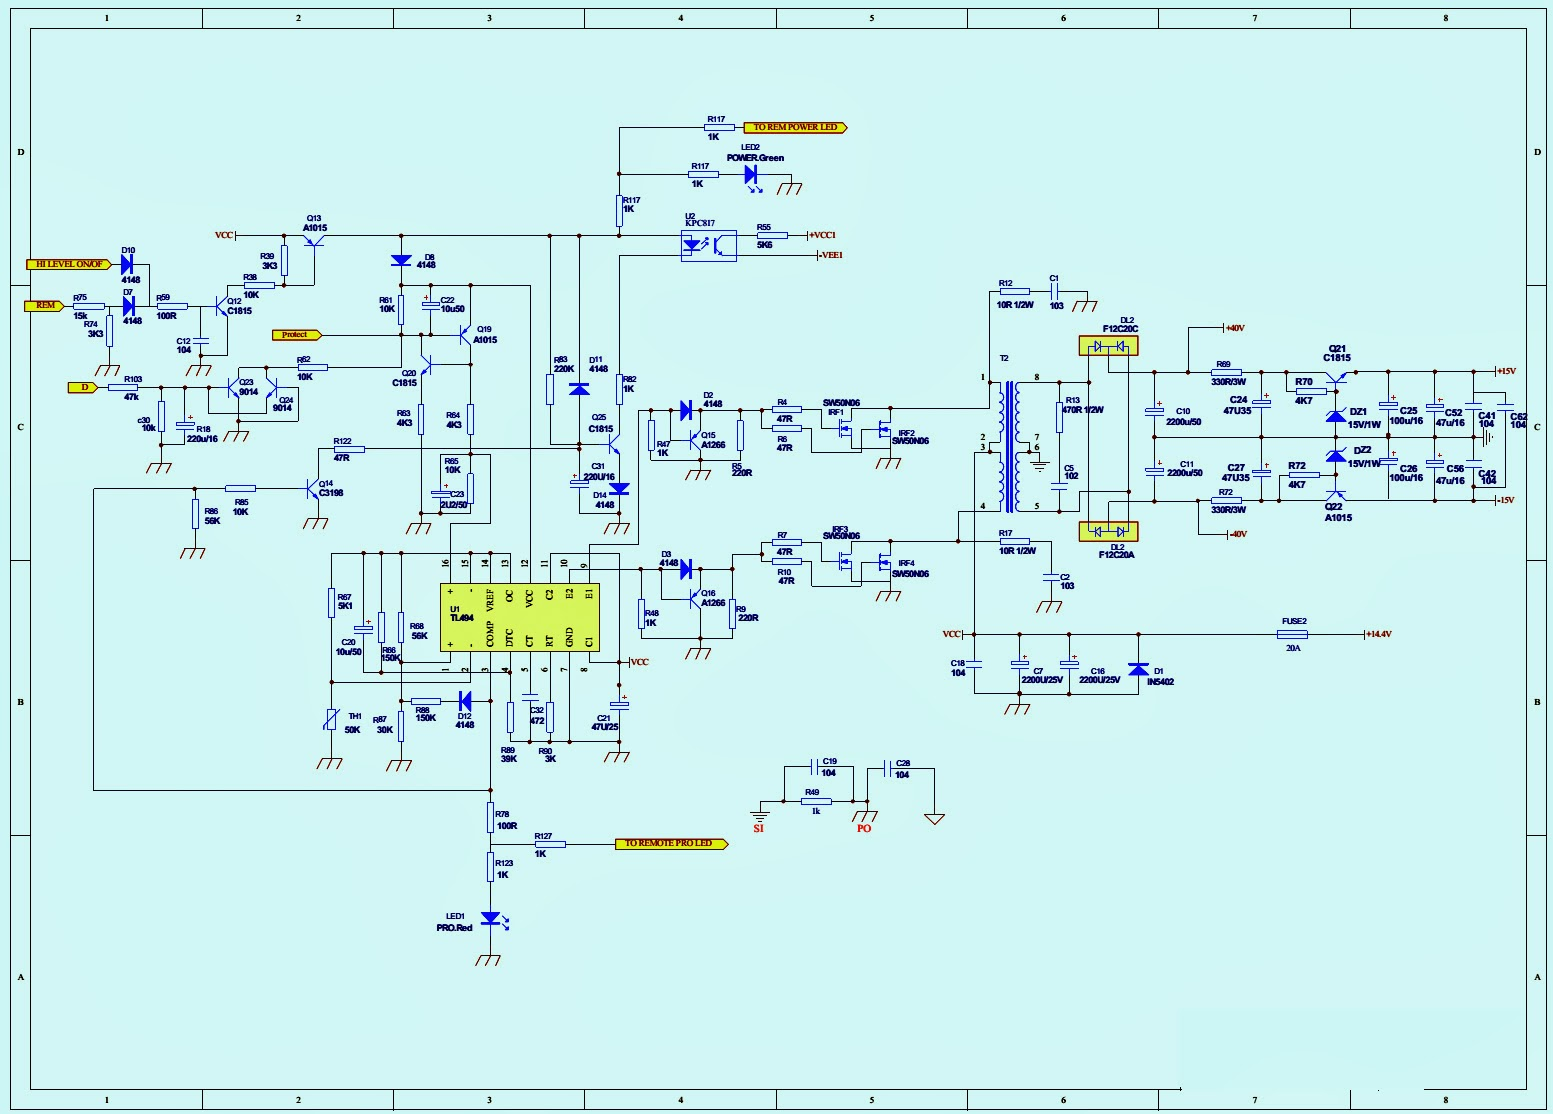 Atx Power Supply Schematic Diagram Additionally Wiring For Car Subwoofer S6512 44 Thunder5001 And Vented Jbl Gt Basspro12 U2013 Powered Circuit